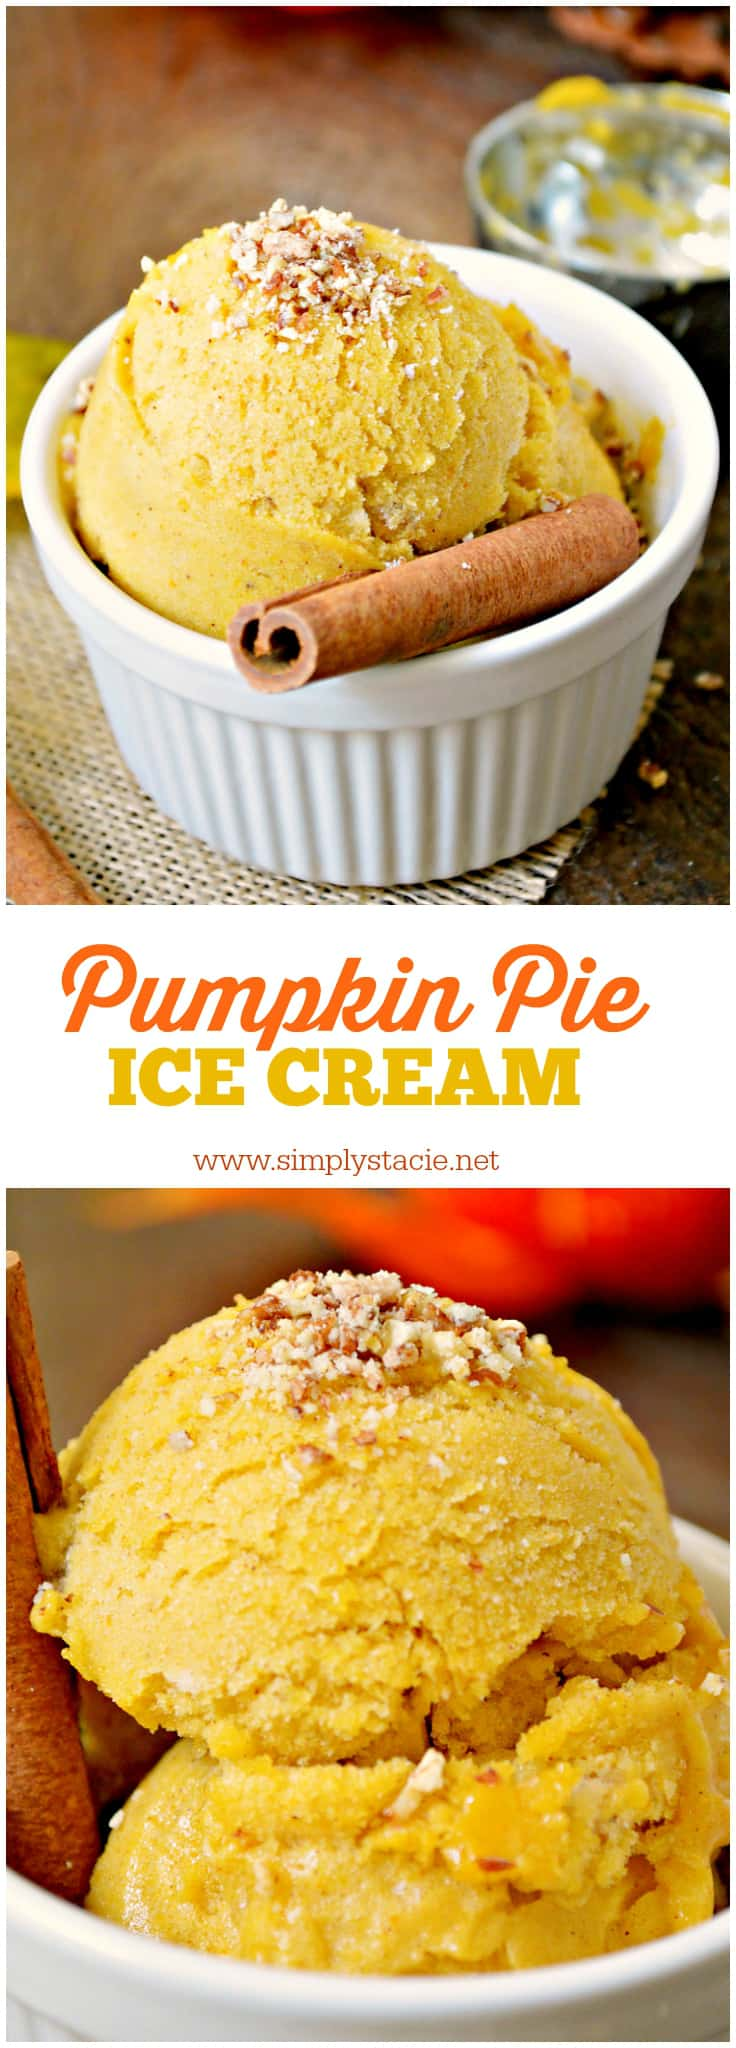 pumpkin-ice-cream from Simply Stacie